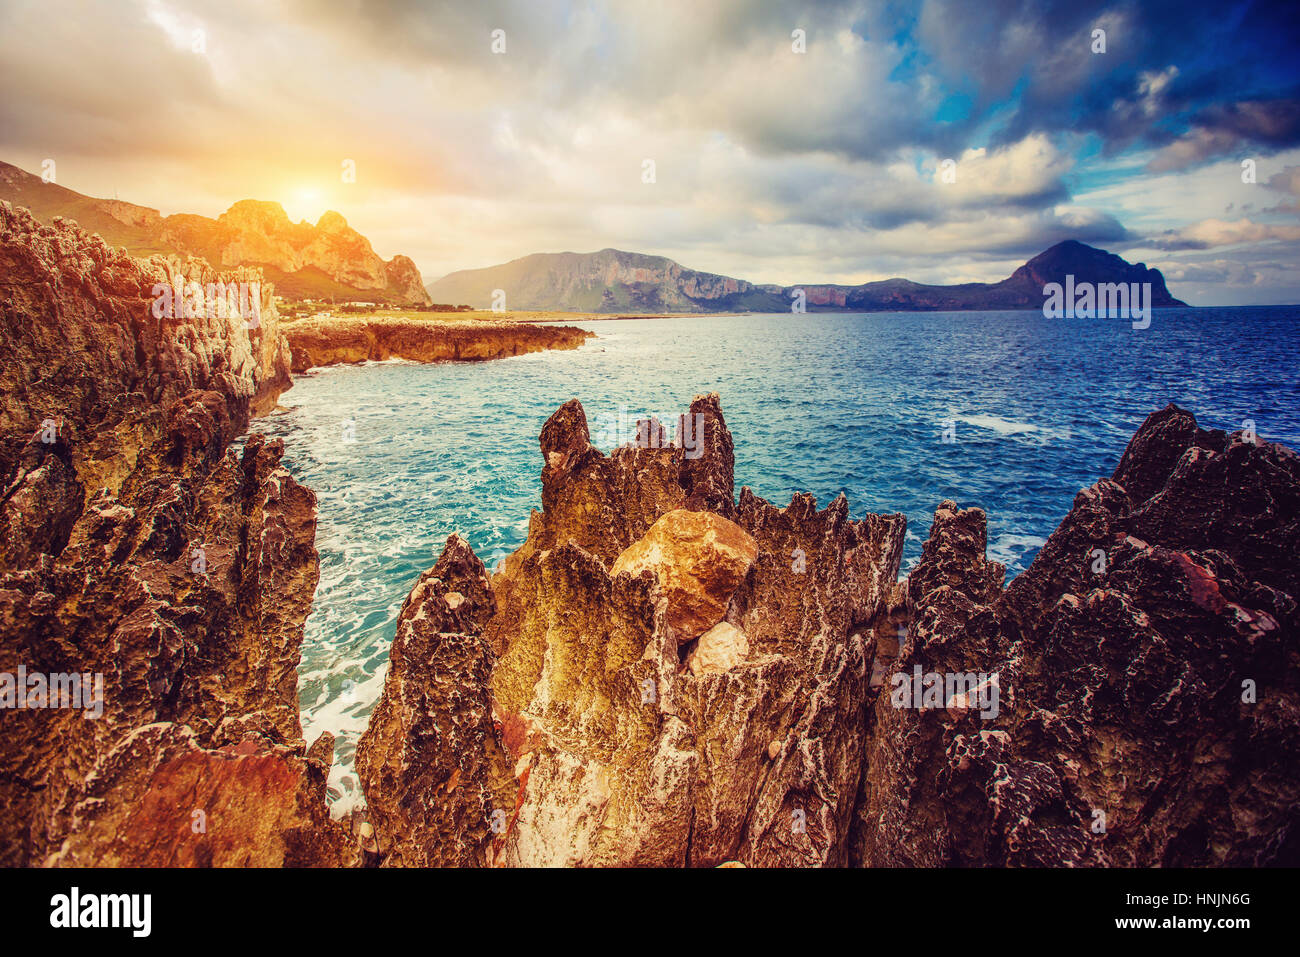 Fantastic view of the nature reserve Monte Cofano. Dramatic scen - Stock Image